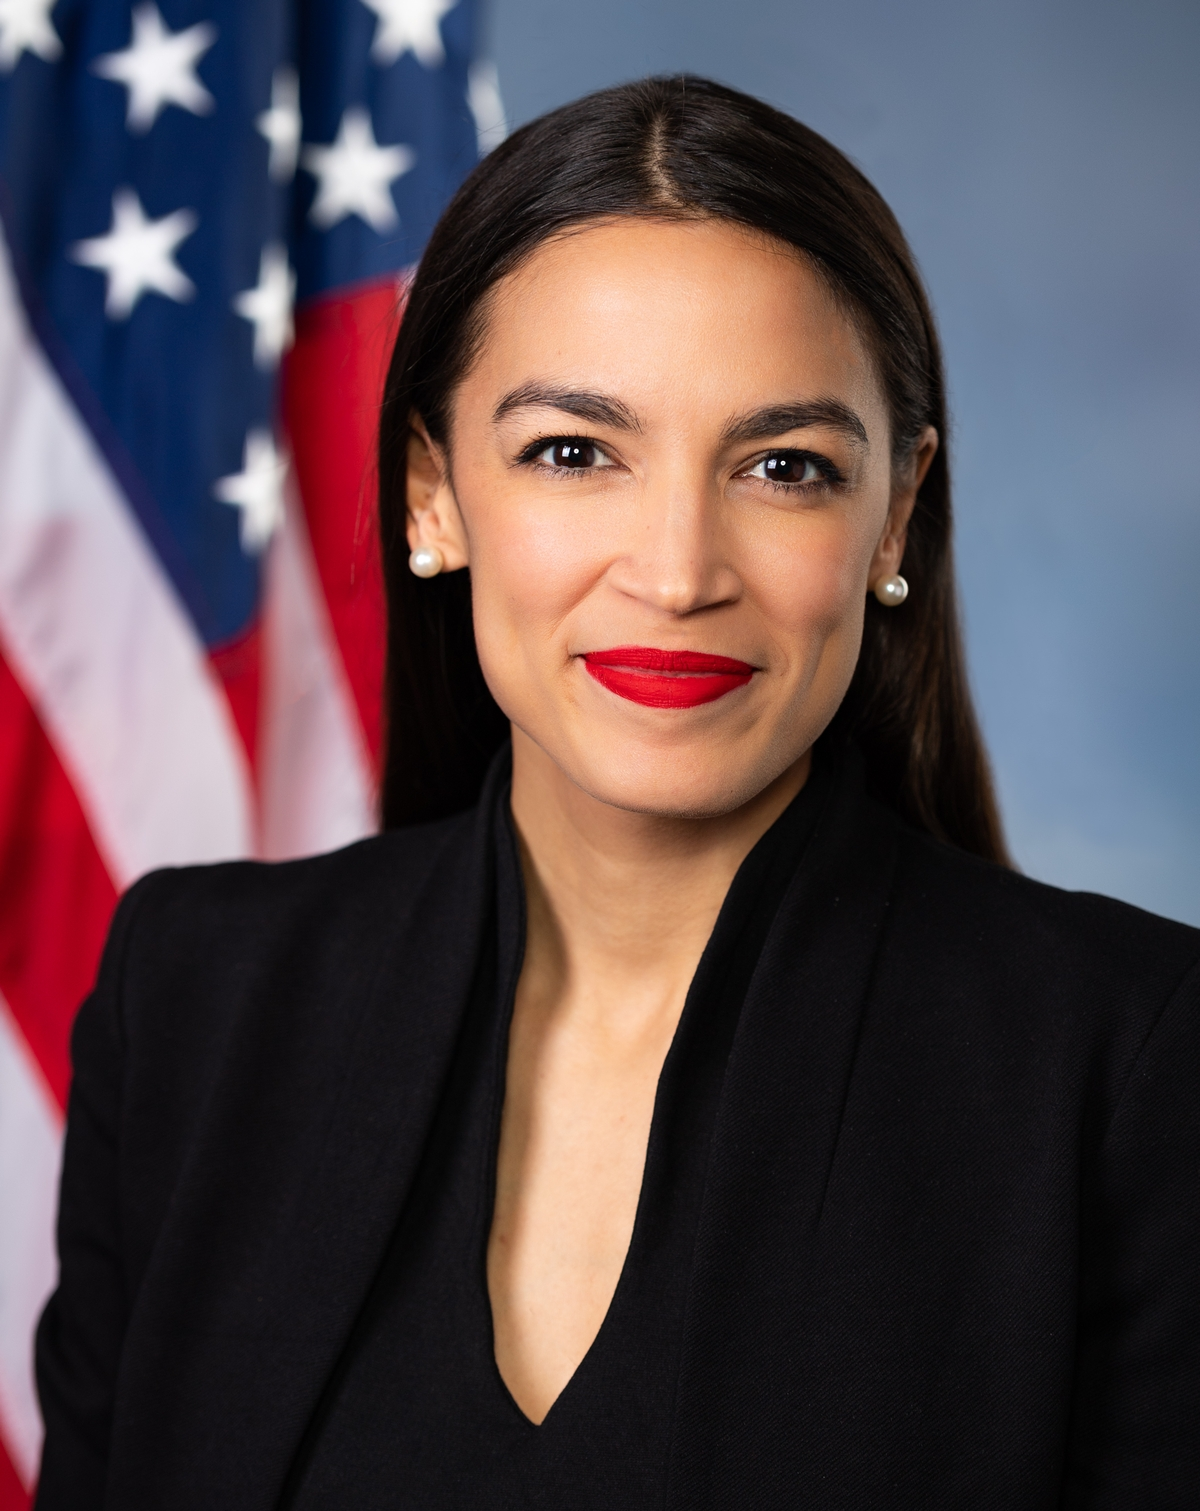 Alexandria Ocasio-Cortez's physical appearance